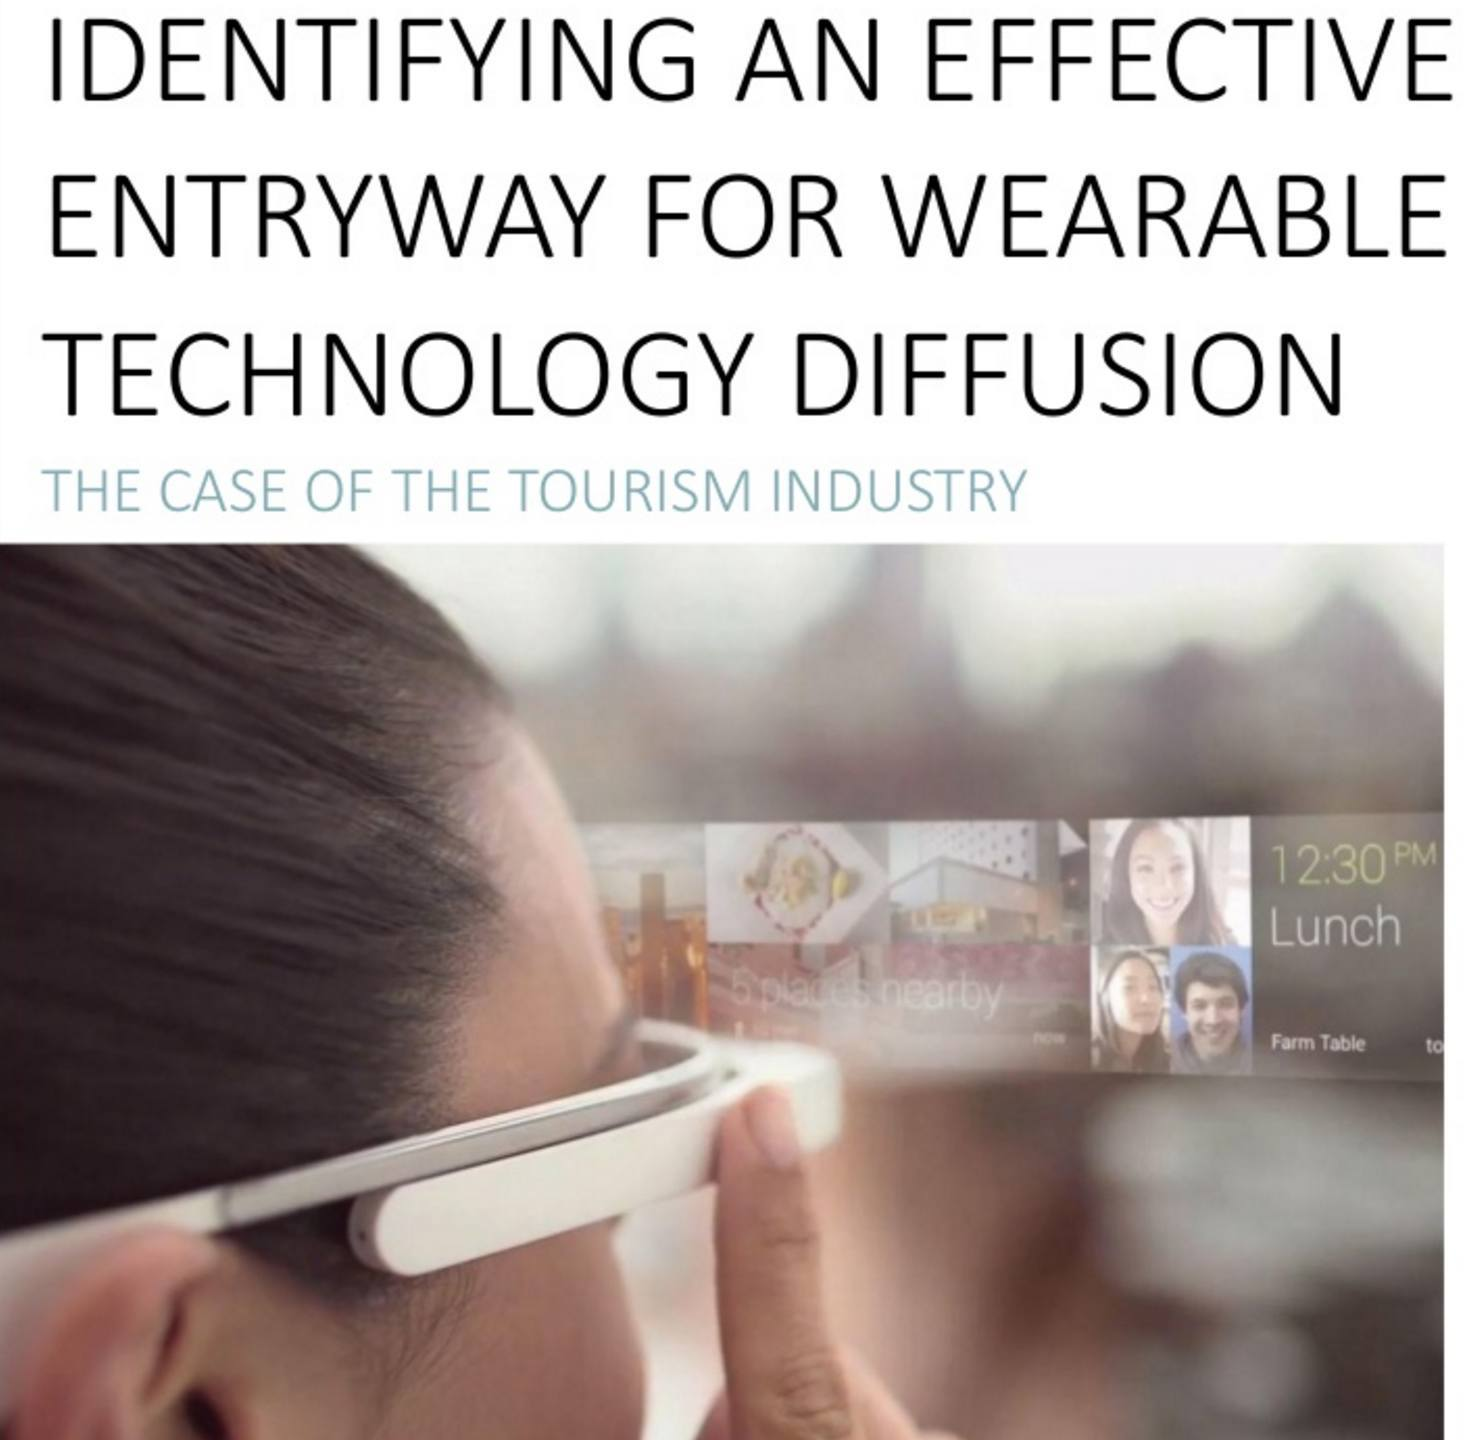 Identifying an effective entryway for wearable technology diffusion